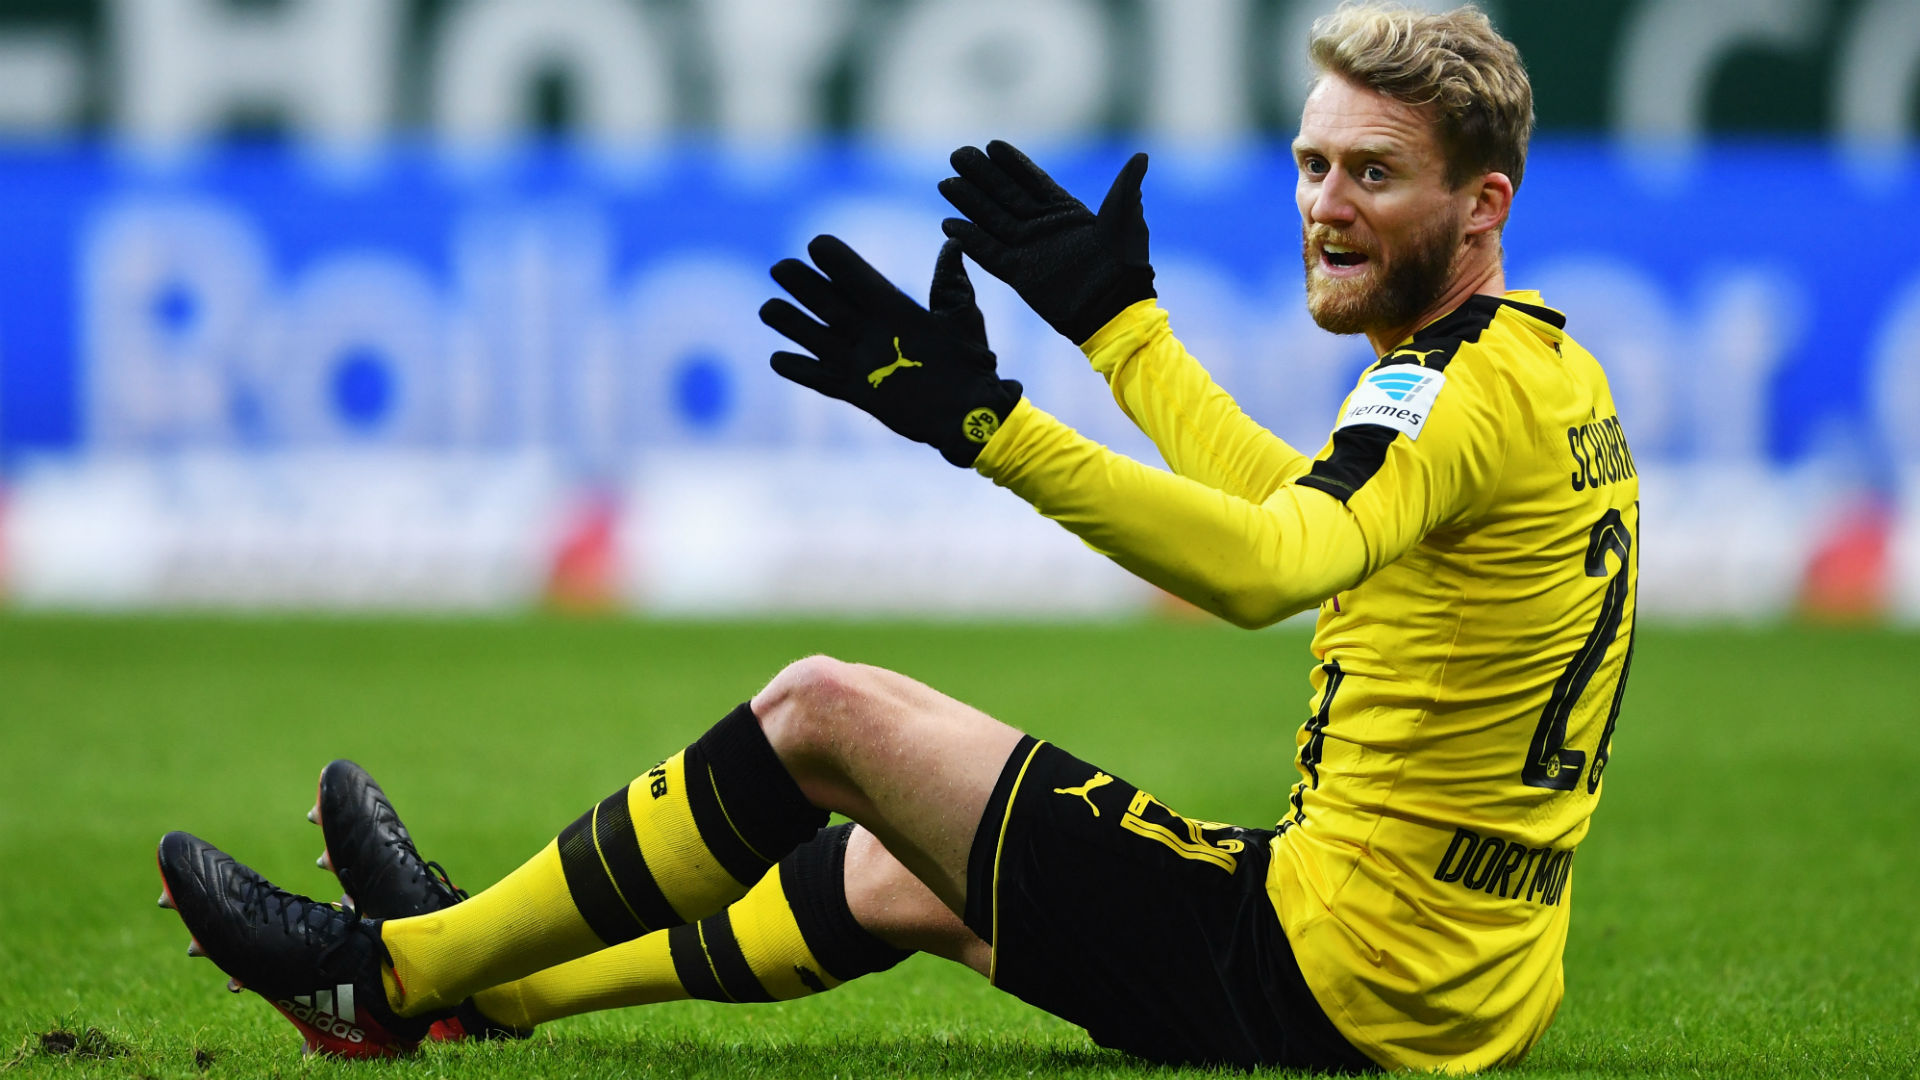 hd andre schurrle dortmund 15p2pzb5vg8it102532pkcrybn - ROUND-UP of 30/1/2018 TRANSFER NEWS, DONE DEALS AND RUMOURS